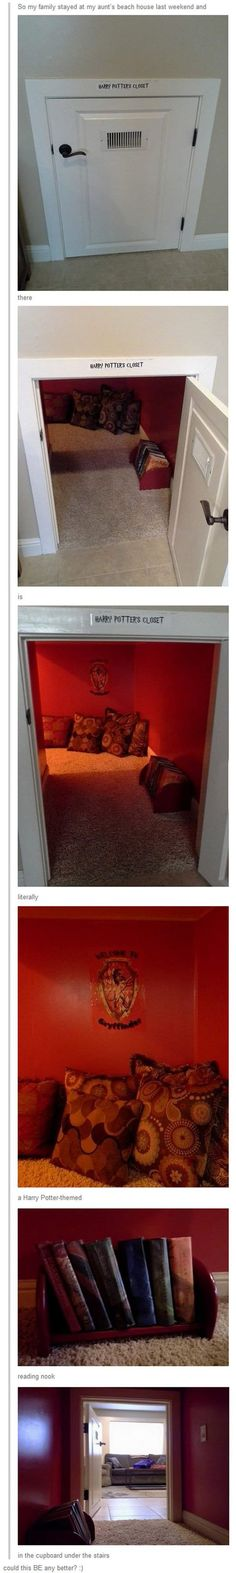 Harry Potter reading nook in the cupboard under the stairs! This is the best thing ever! Ridiculous Harry Potter, Harry Potter Jokes, Harry Potter Fandom, Markiplier, Pewdiepie, Desenhos Harry Potter, Tumblr Users, No Muggles, Yer A Wizard Harry